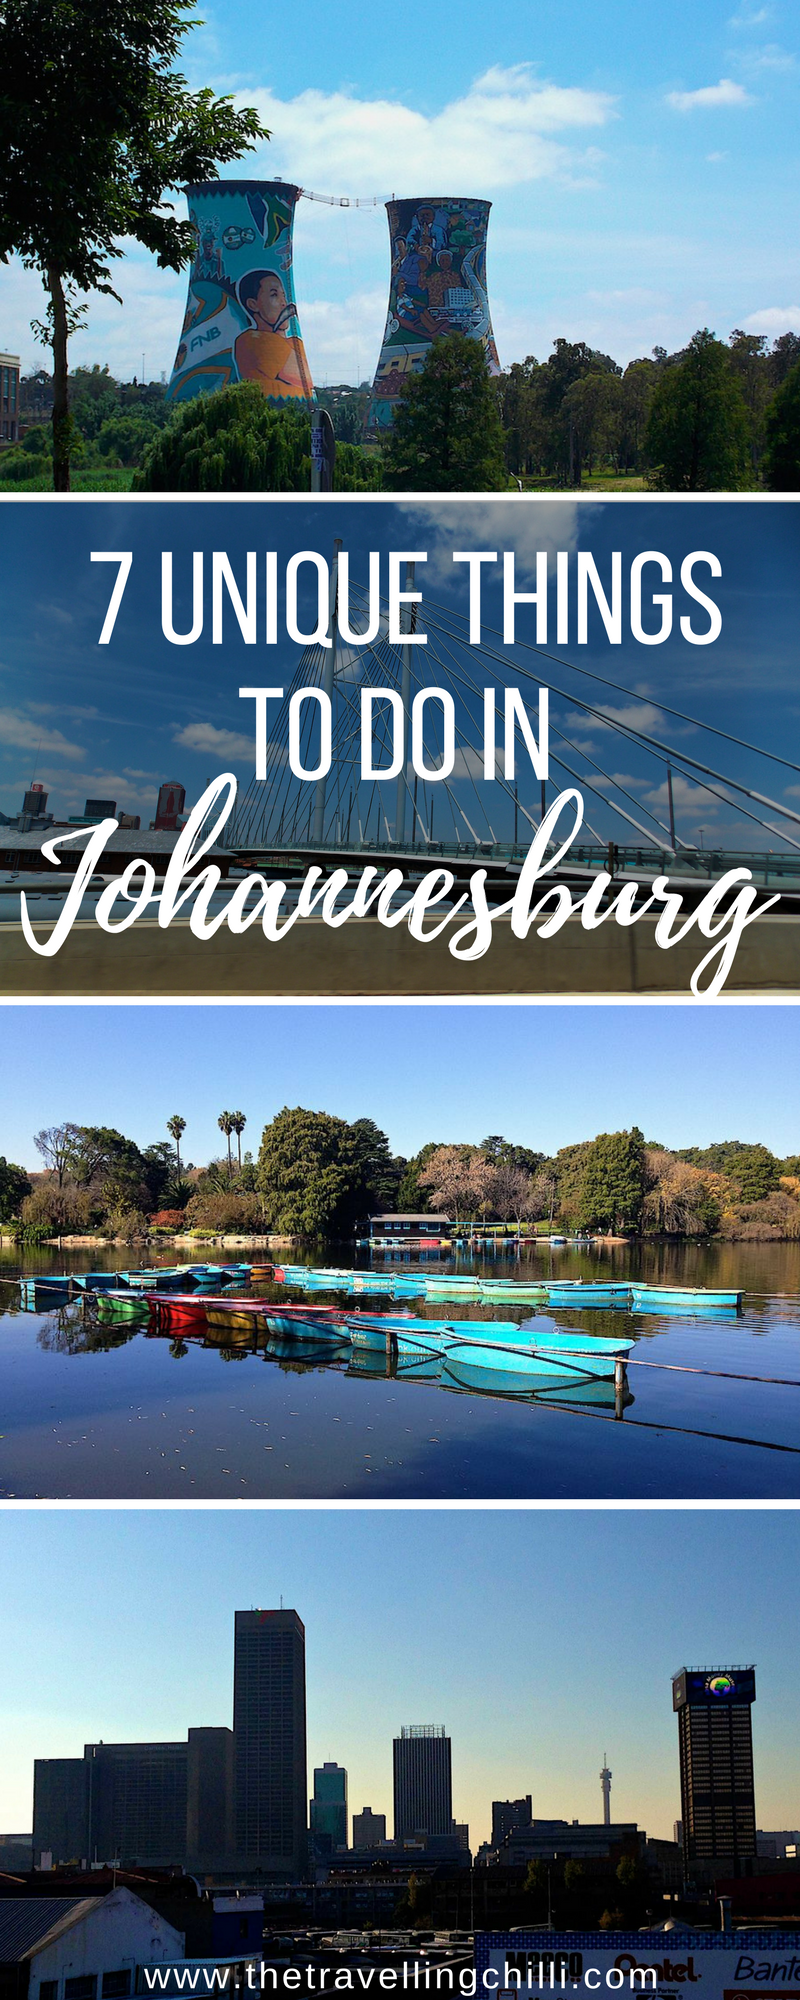 7 Unique things to do in Johannesburg South Africa   Interesting things to do in Johannesburg South Africa   Joburg   Jozi   #johannesburg #southafrica #joburg #thingstodo